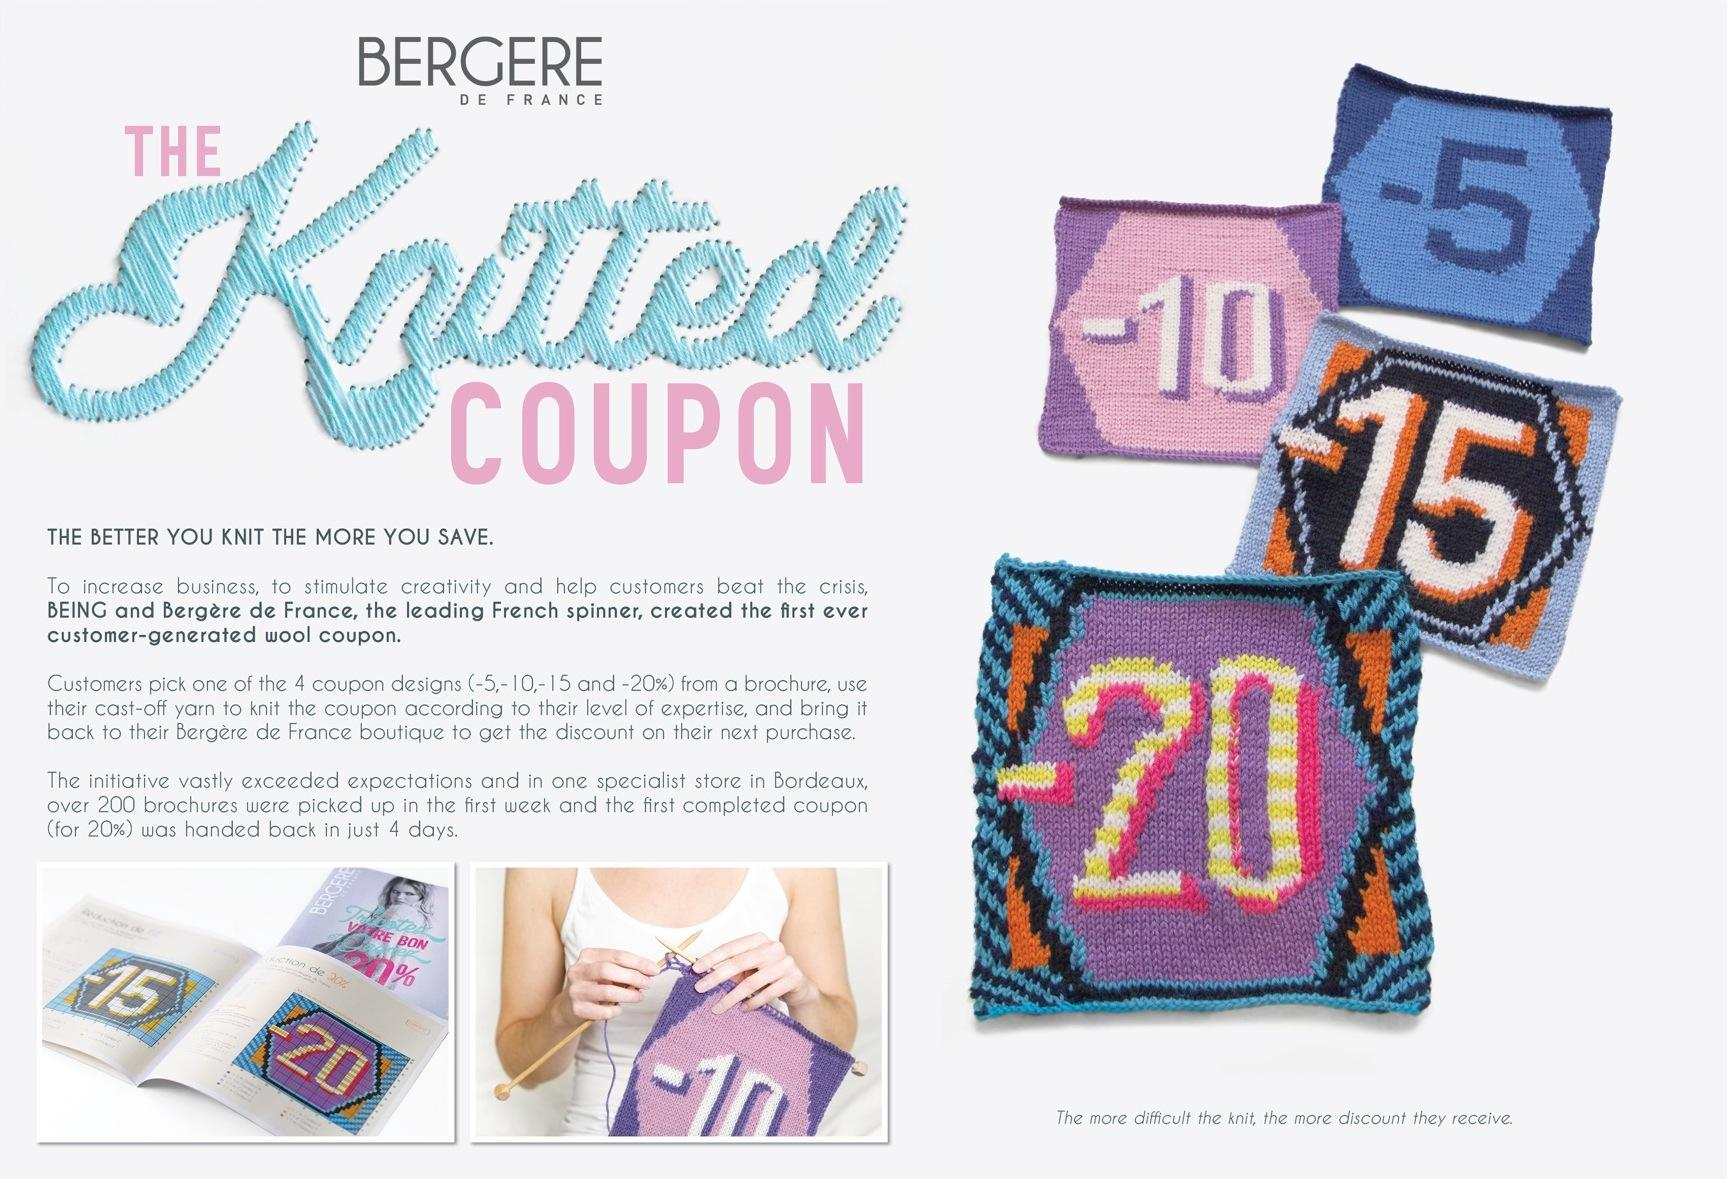 Bergère de France Ambient Ad -  The knitted coupon